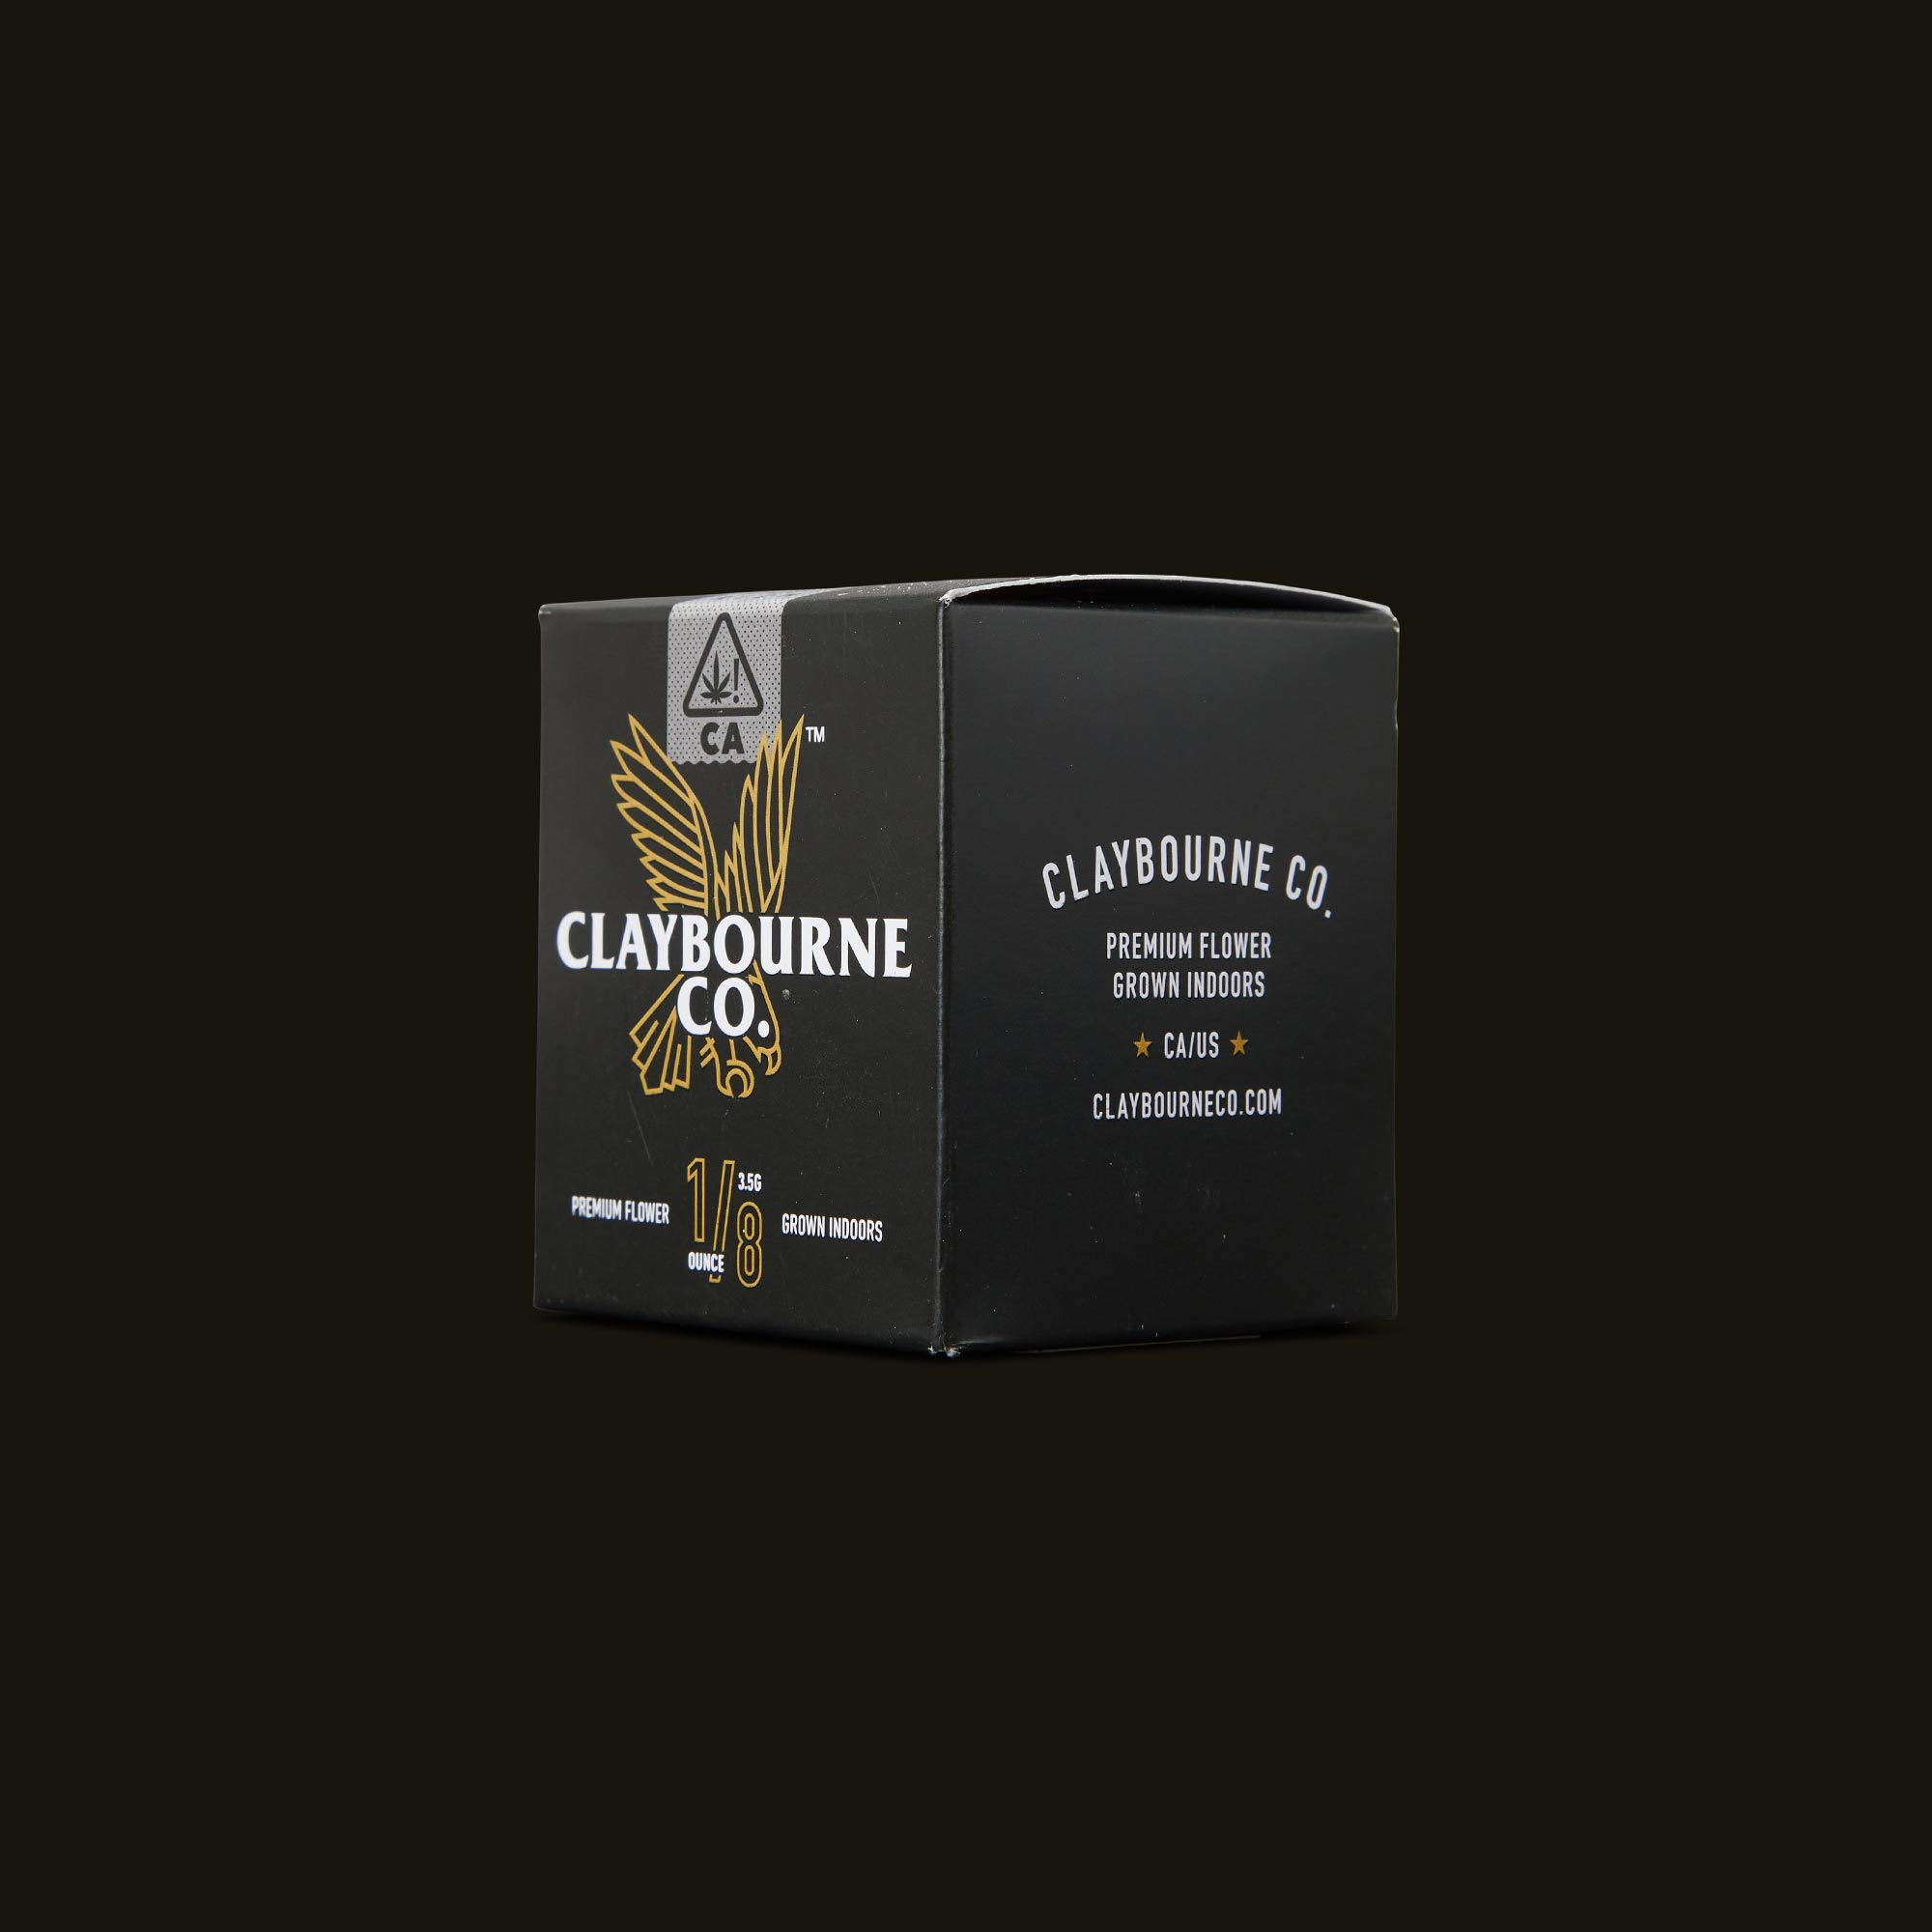 Claybourne Co. Mendo Breath Side Packaging